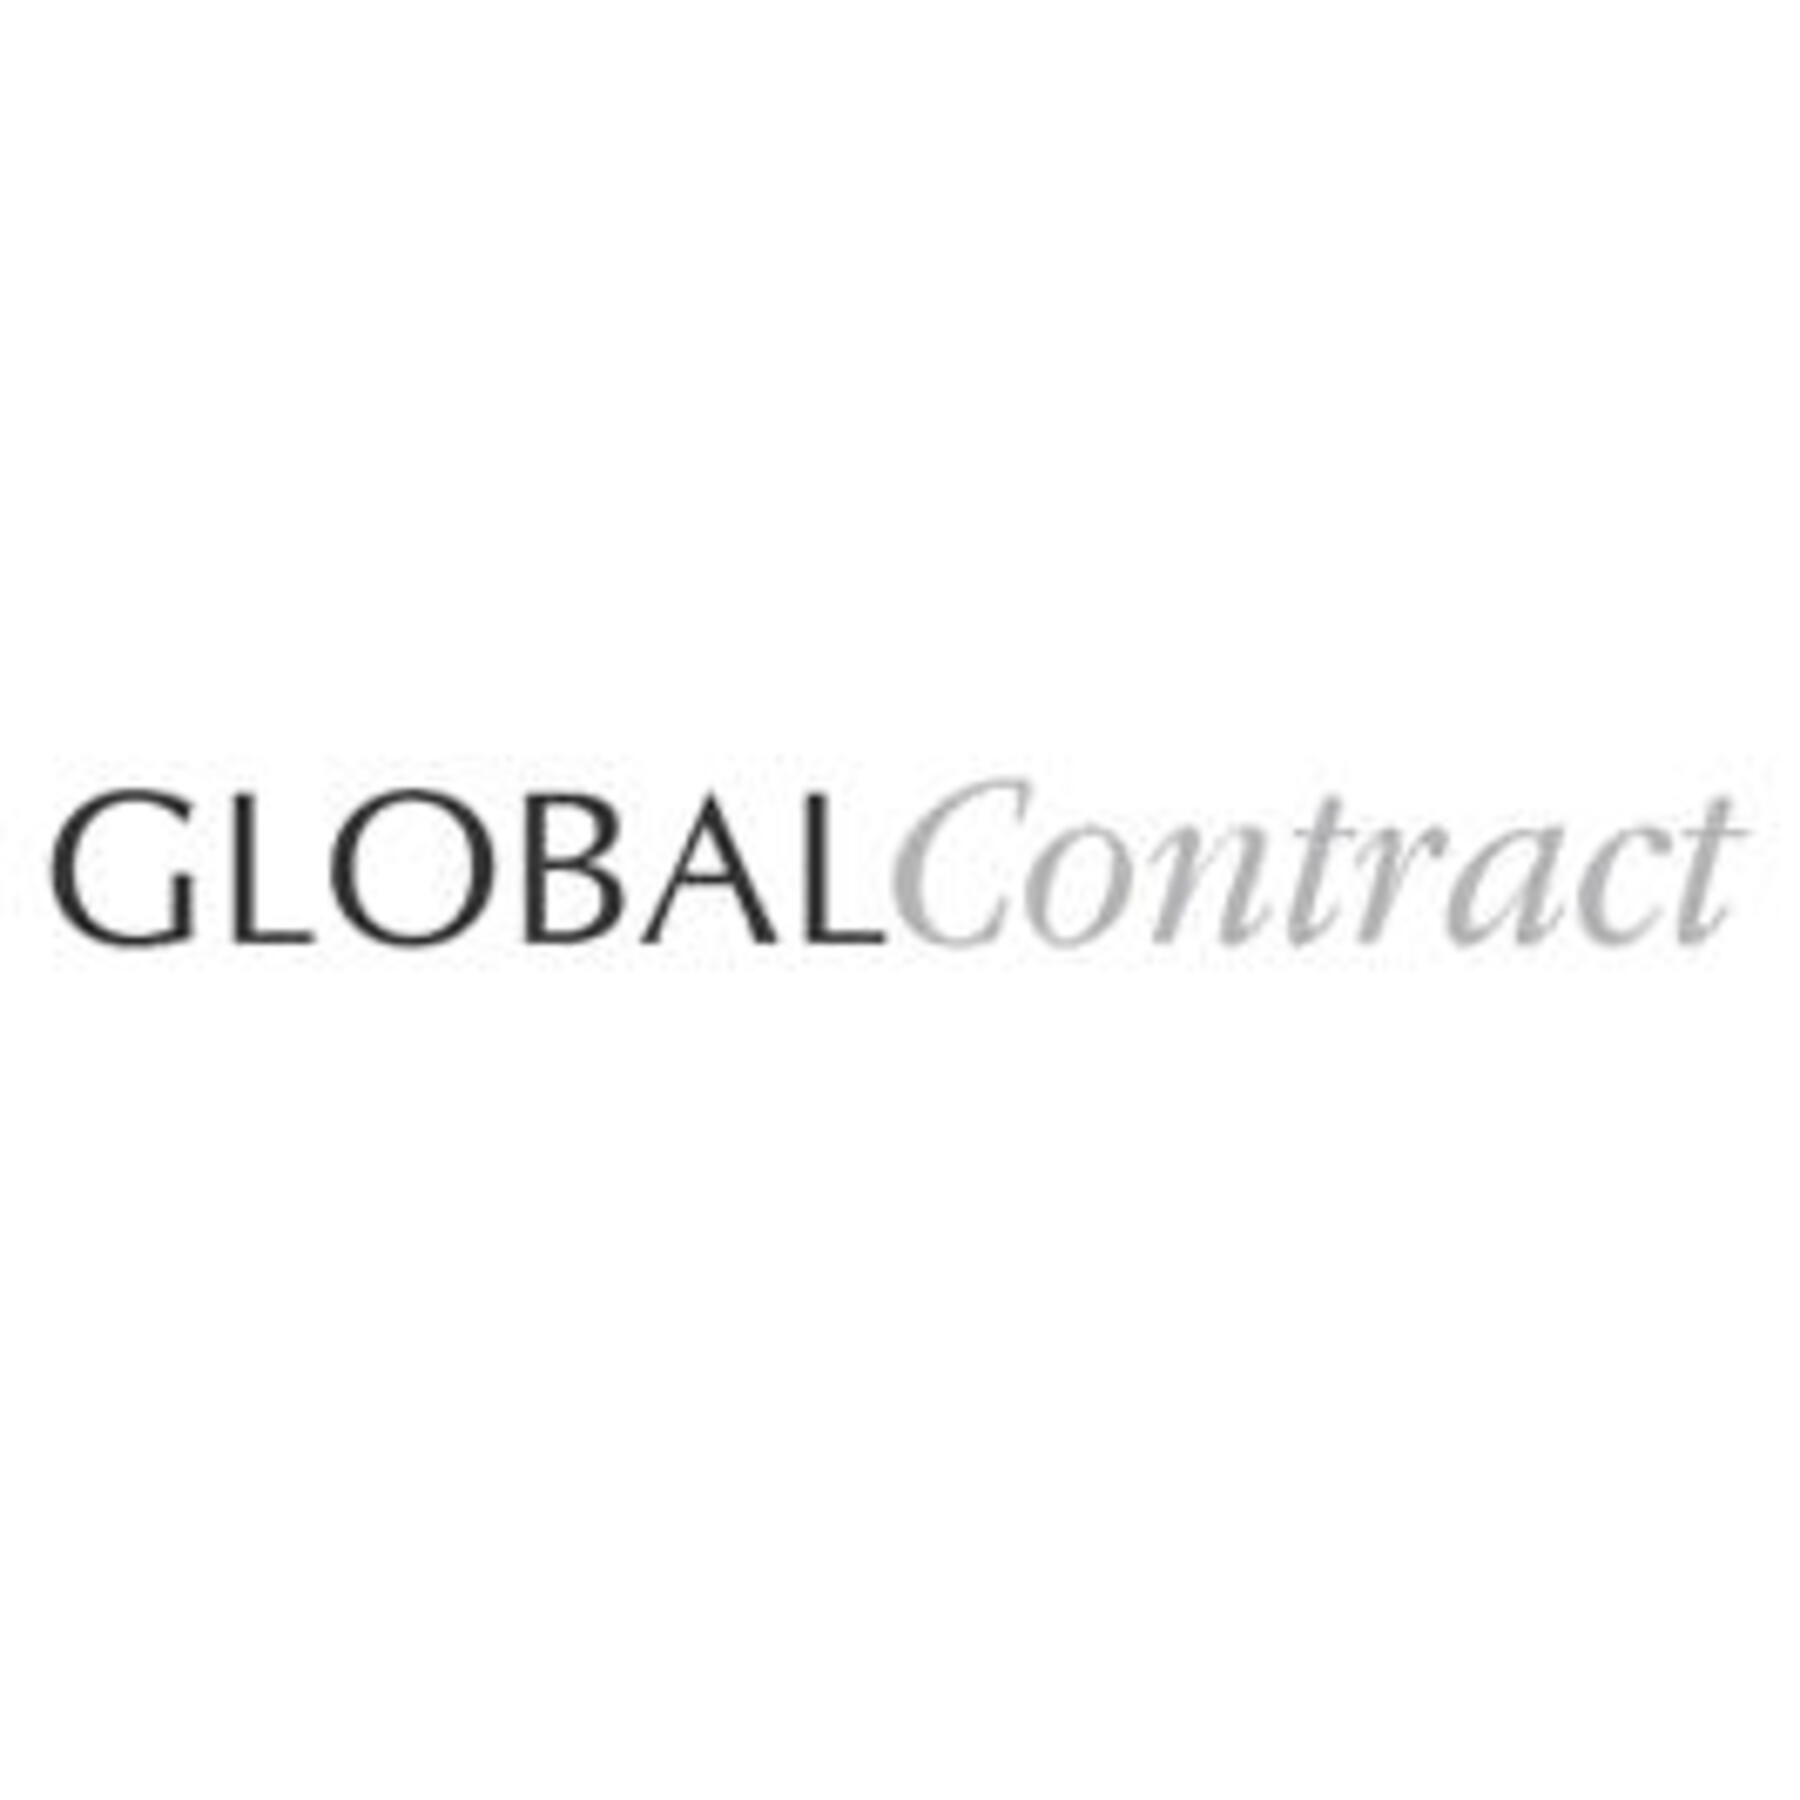 798465 1800 0751 797657 auto 0751 global contract